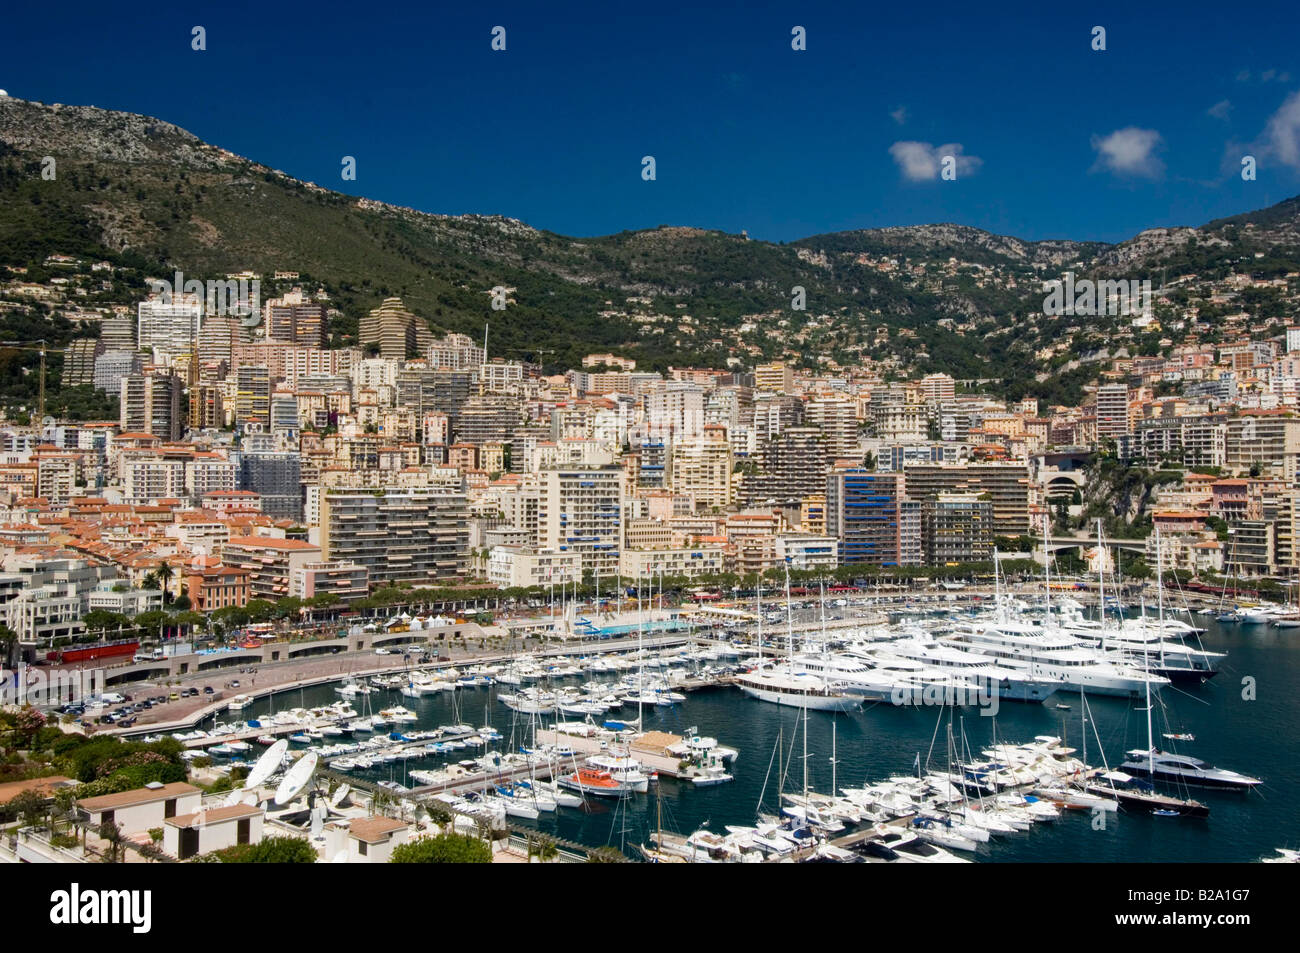 Monaco view over the port Date 12 02 2008 Ref WP B726 110139 0040 COMPULSORY CREDIT World Pictures Photoshot - Stock Image